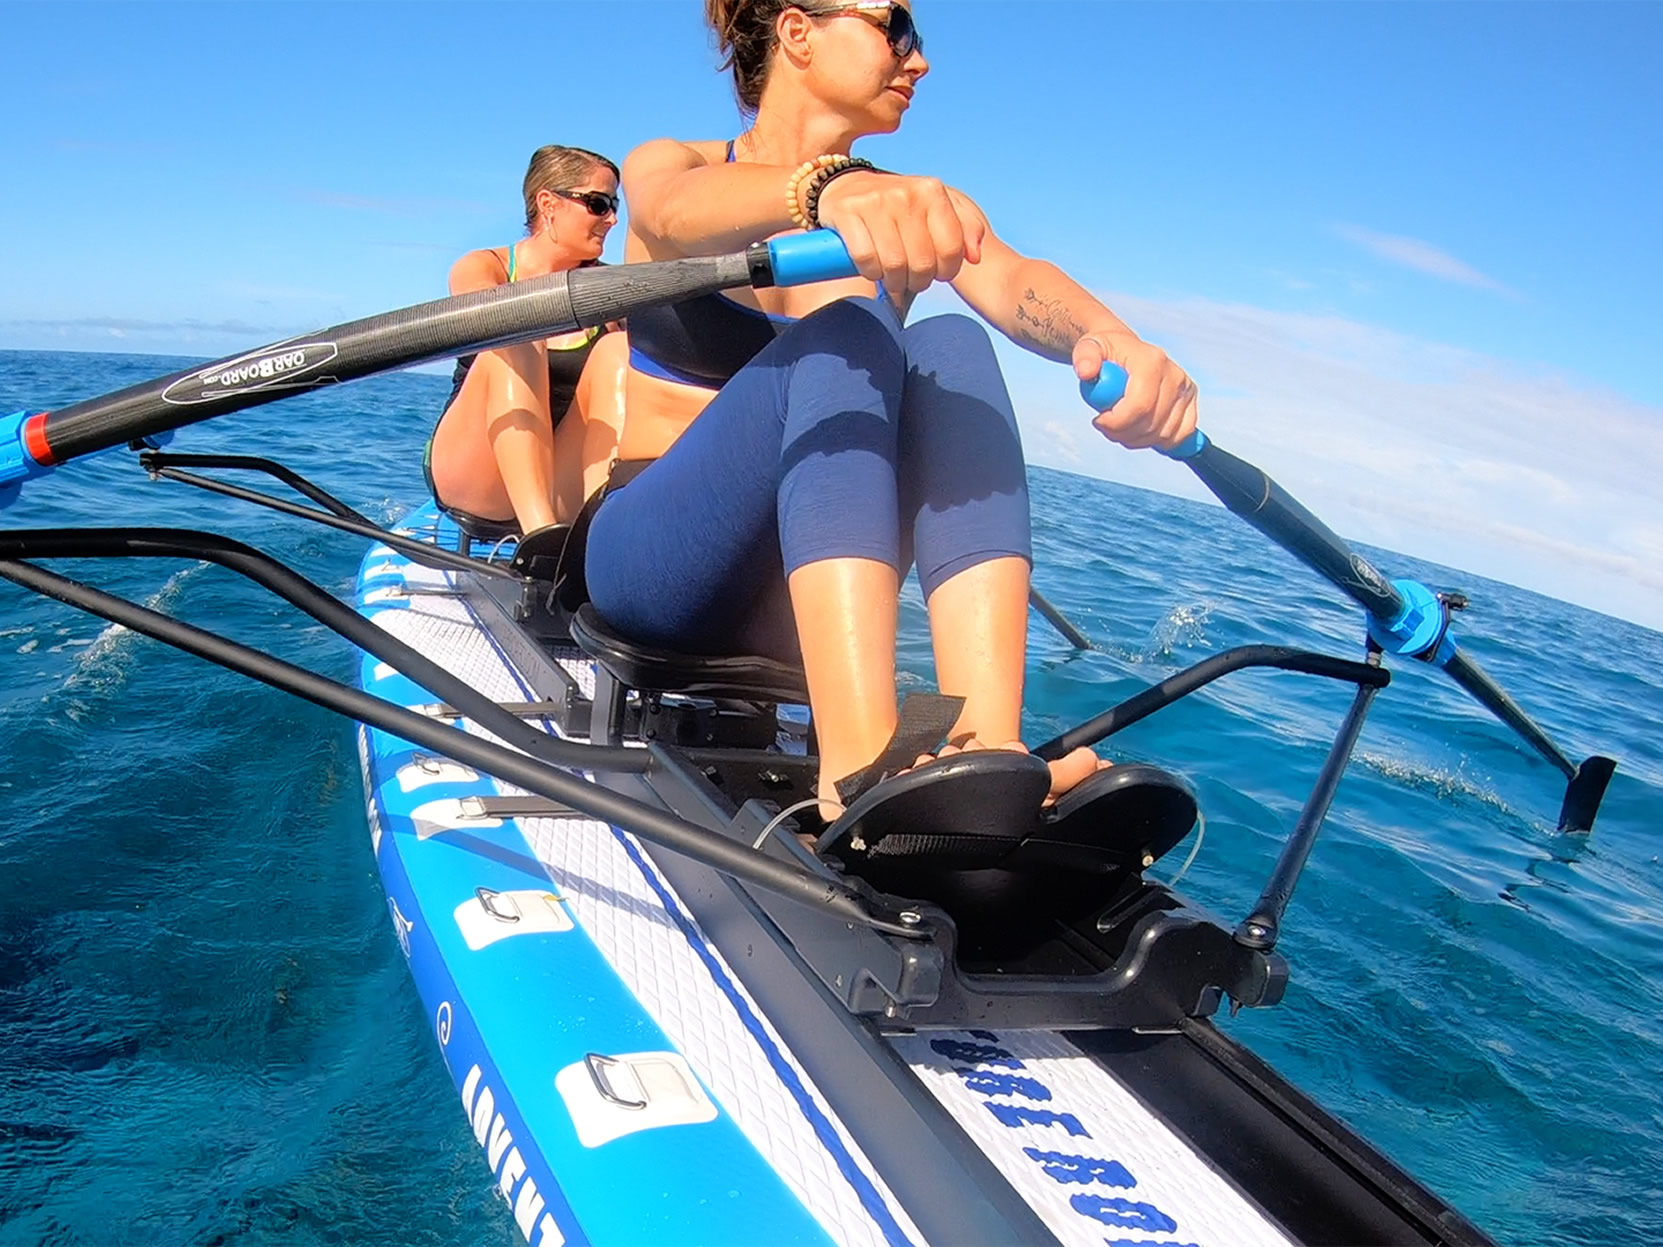 Oar-Board-Adventure-Row-16-SUP-Rower-Combo-fun-fitness-recreation-sports-Whitehall-Rowing-and-Sail